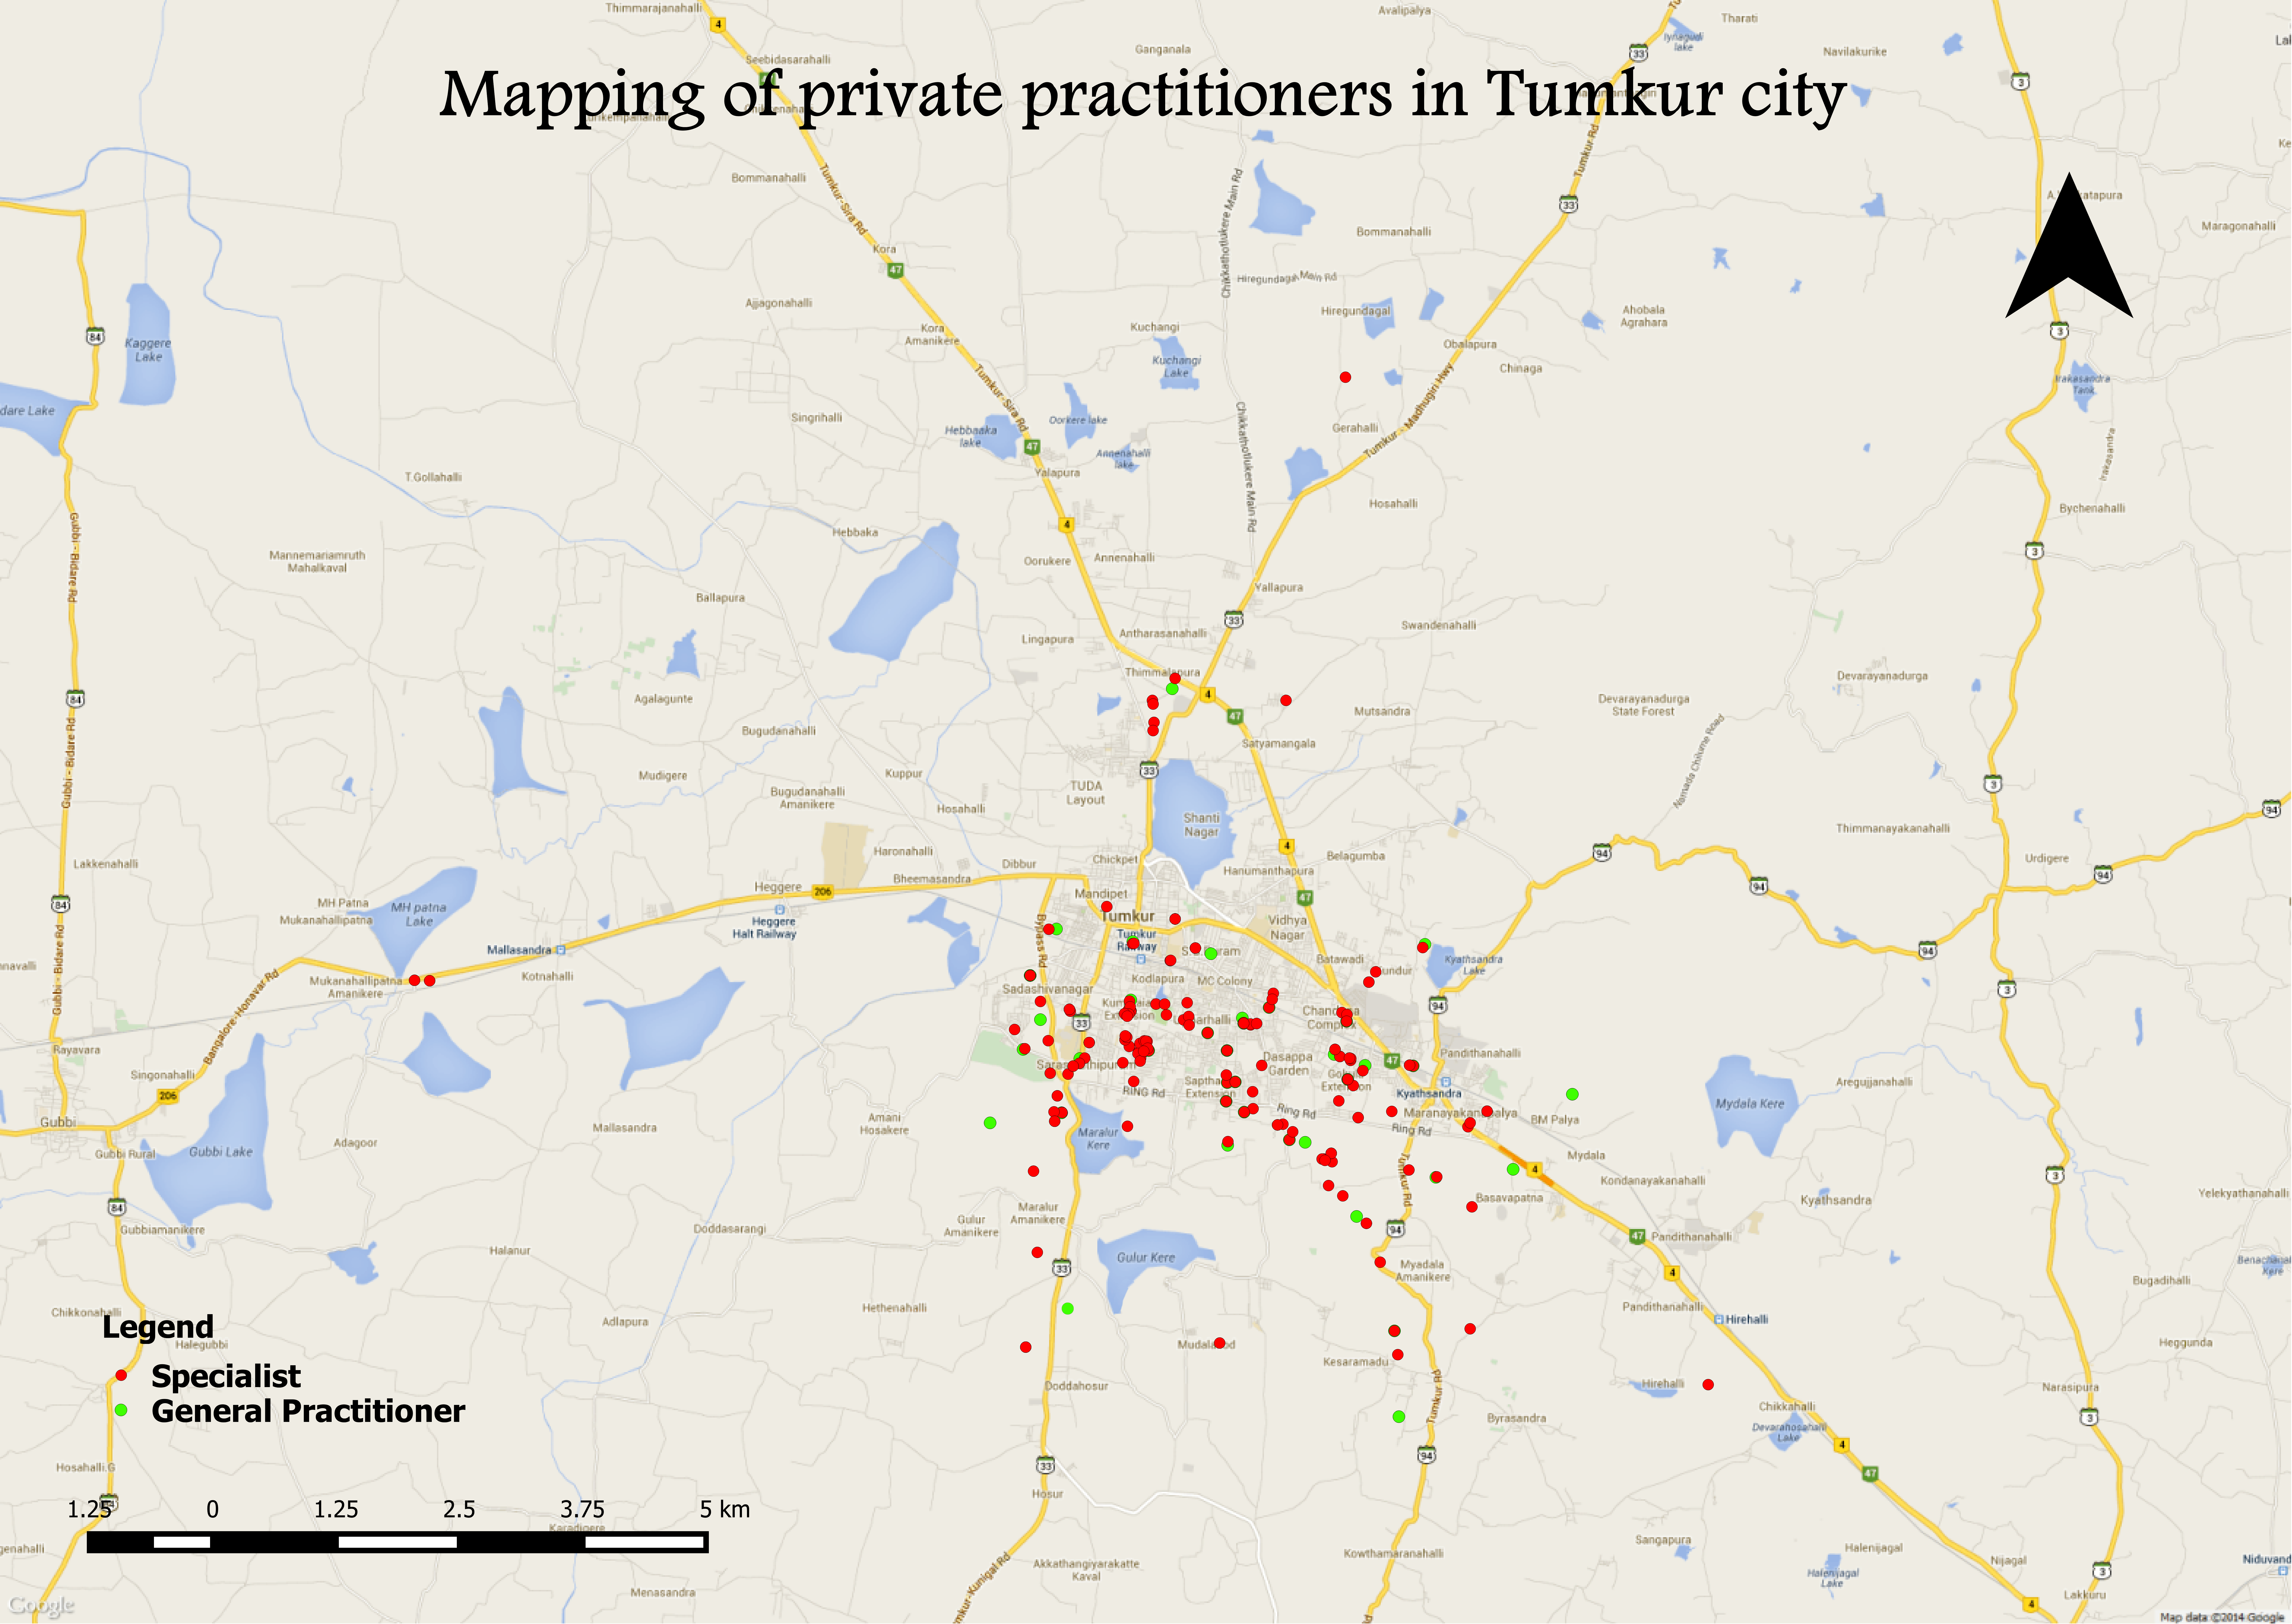 Private Allopathic health providers mapping using Geographic Positioning System(GPS), Tumkur city